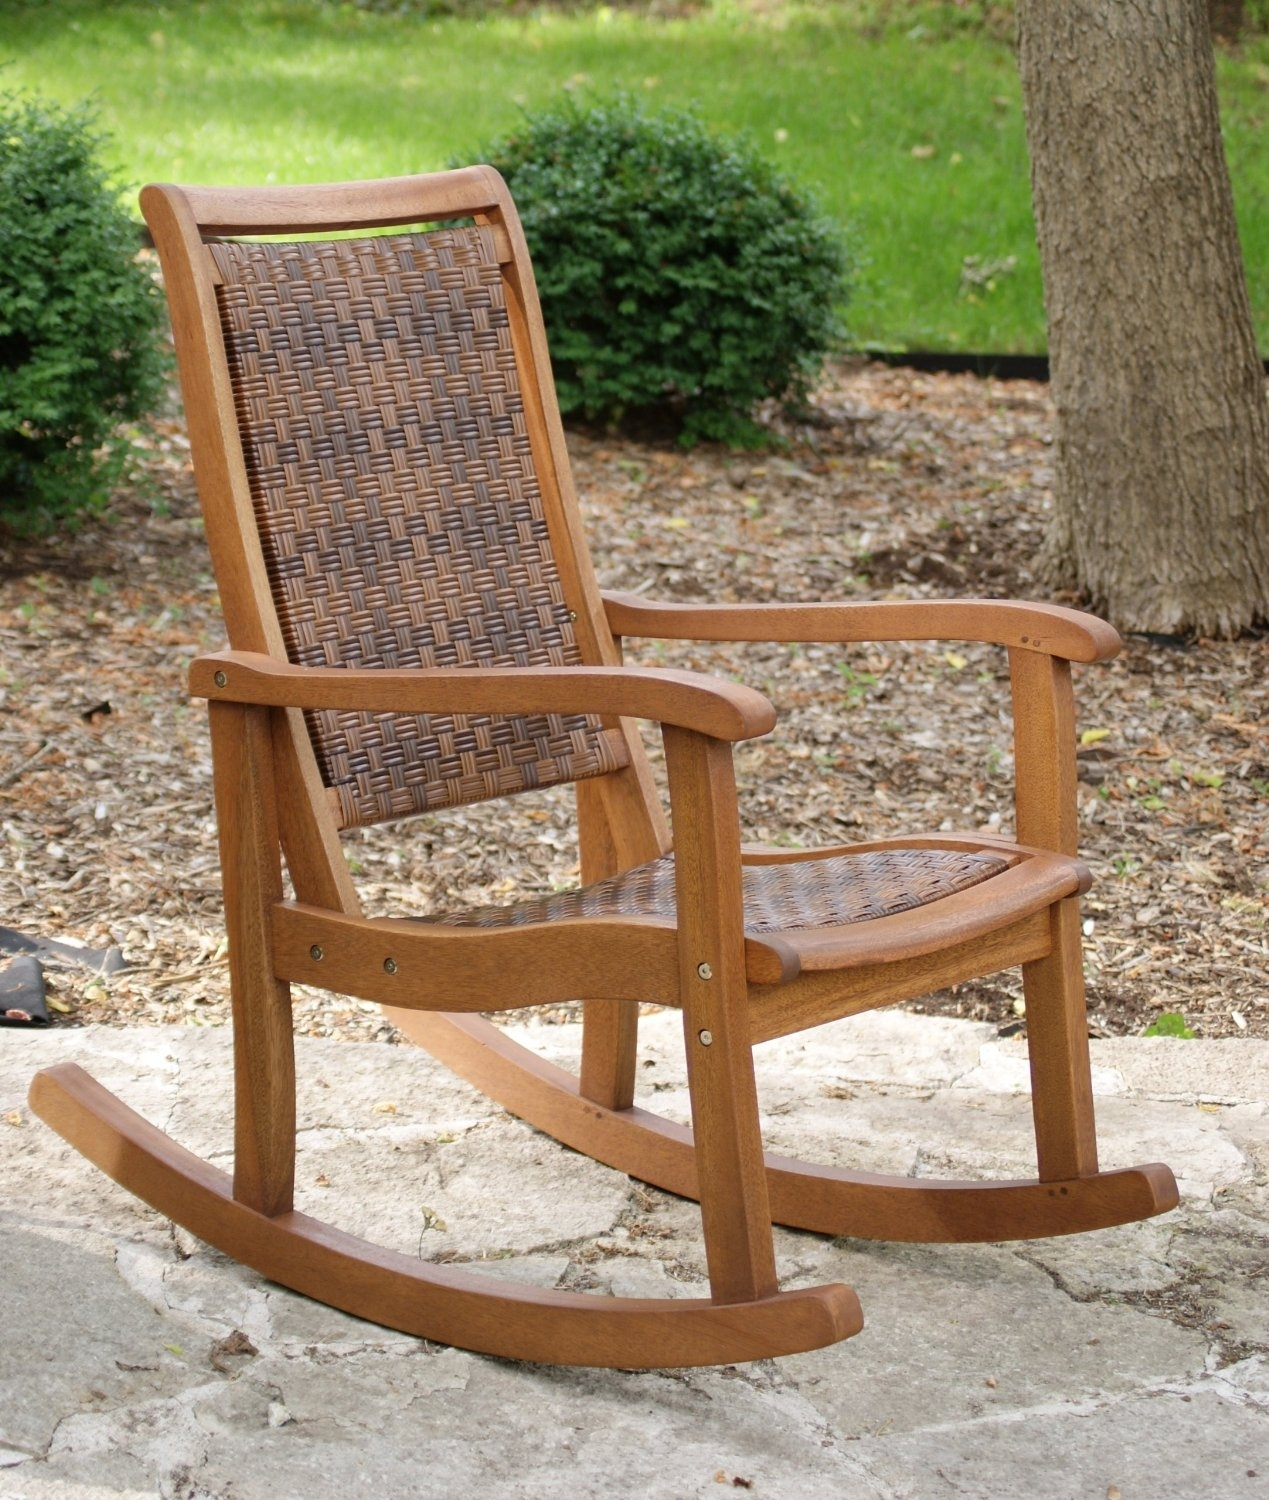 Great Rocking Patio Chairs Outdoor Wicker Rocking Chairs Patio With Regard To Stackable Patio Rocking Chairs (View 8 of 15)